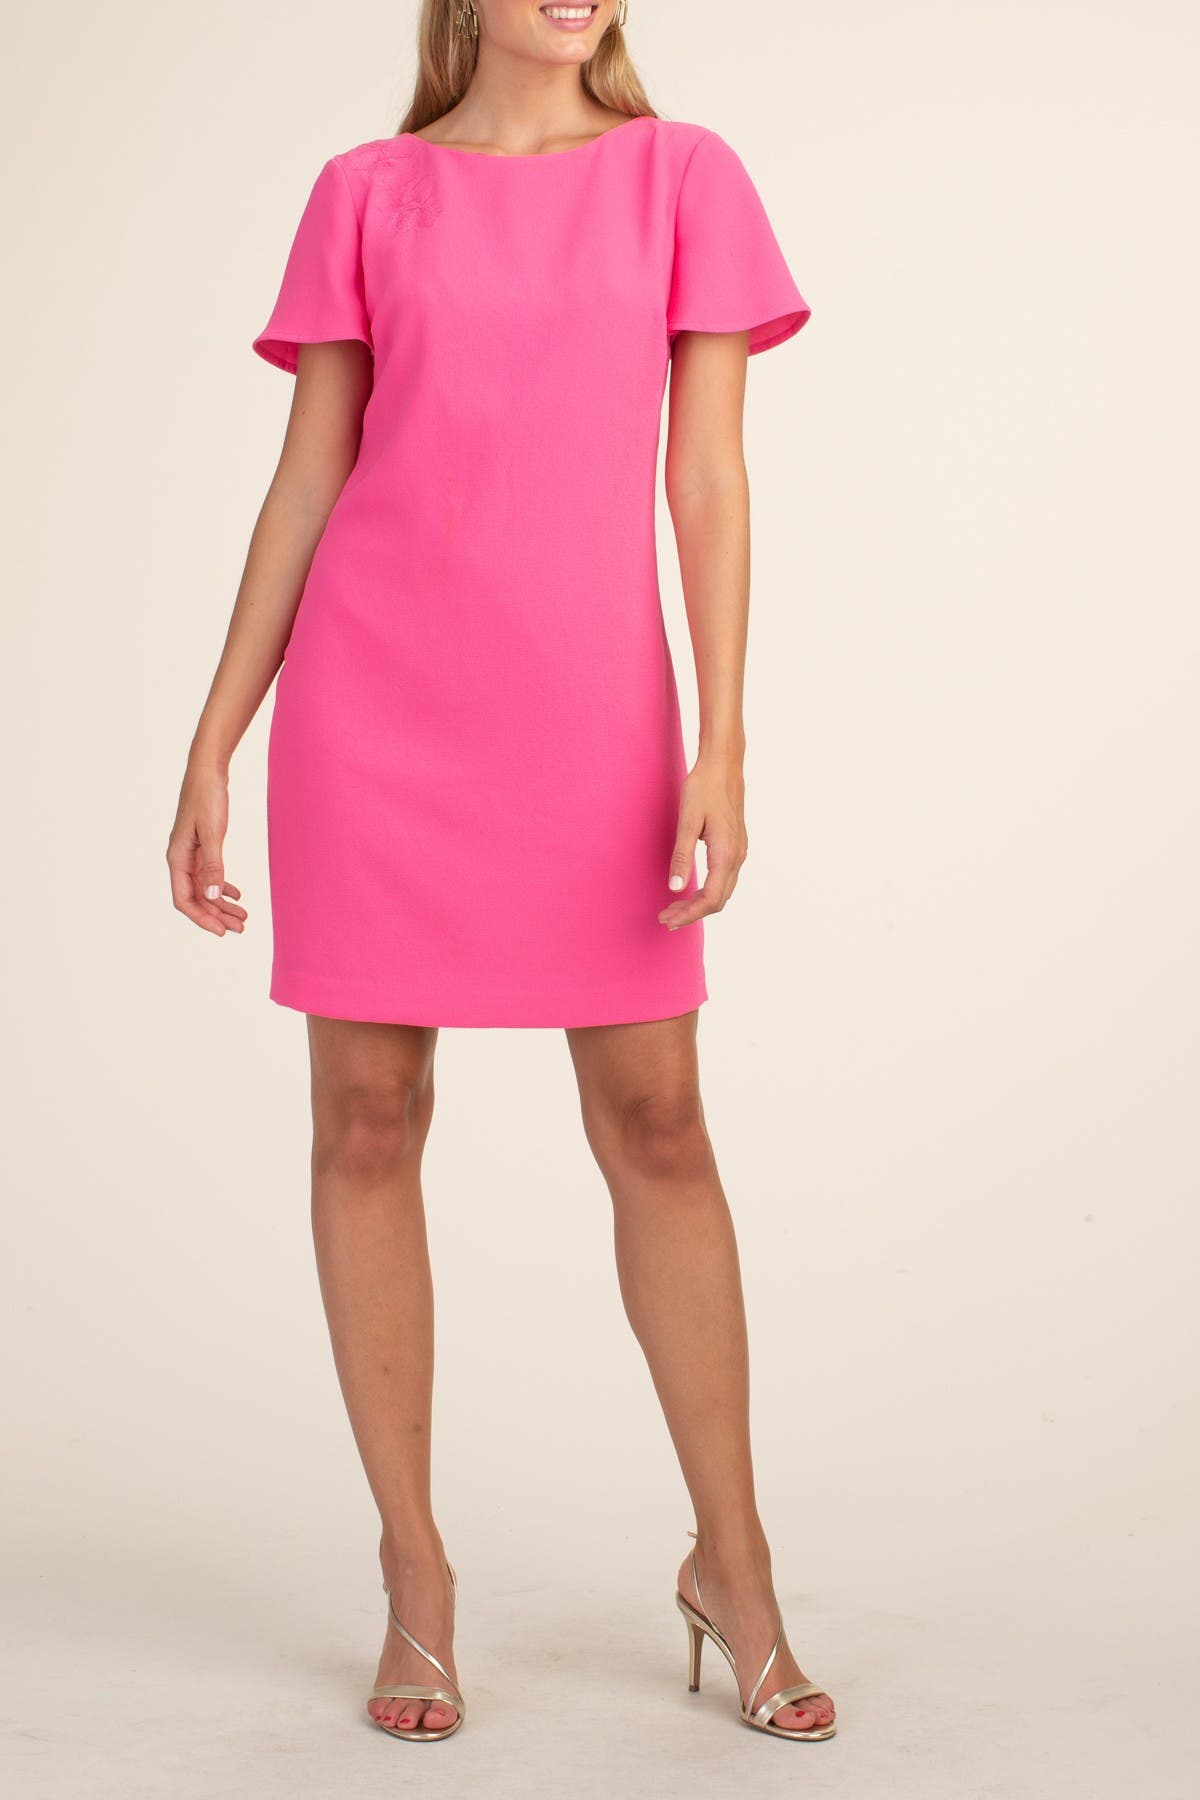 Image of Trina Turk Catch Dress